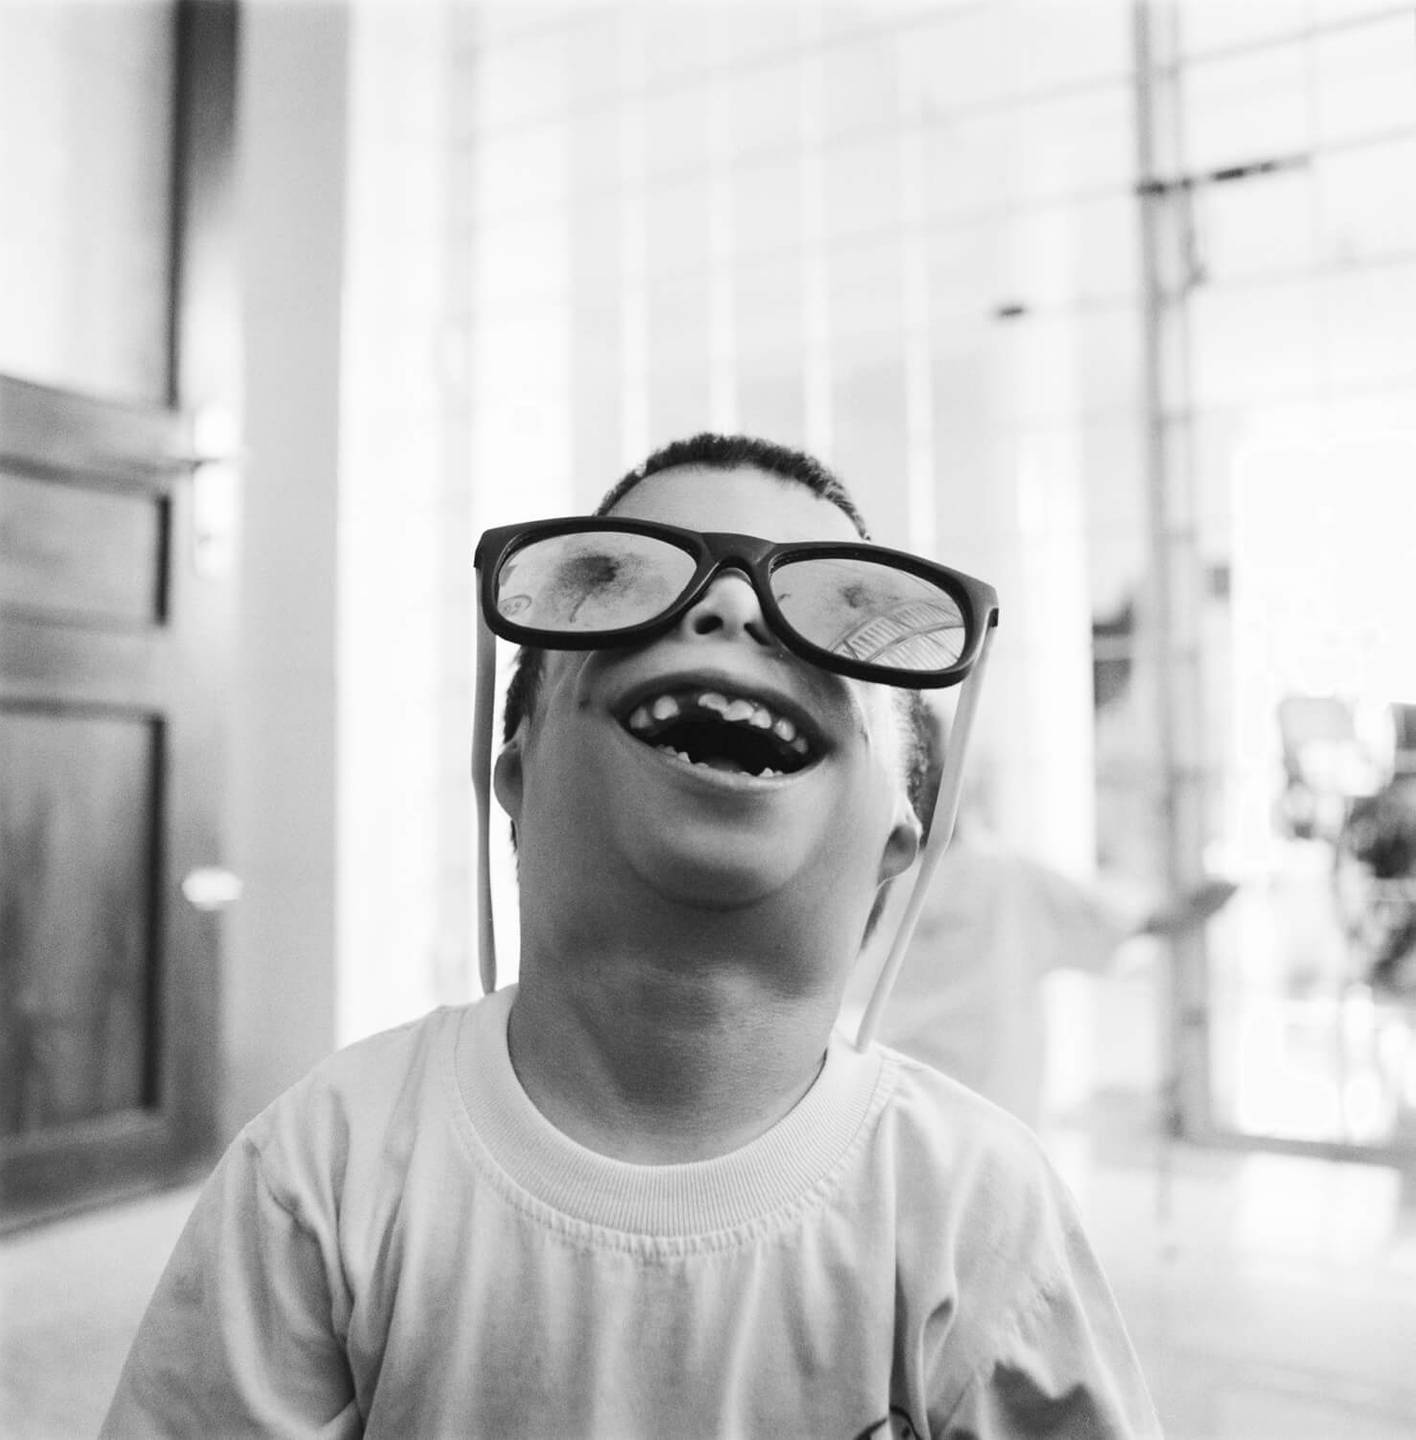 A smiling, deformed Asian child wearing giant sunglasses and looking up into the sky.